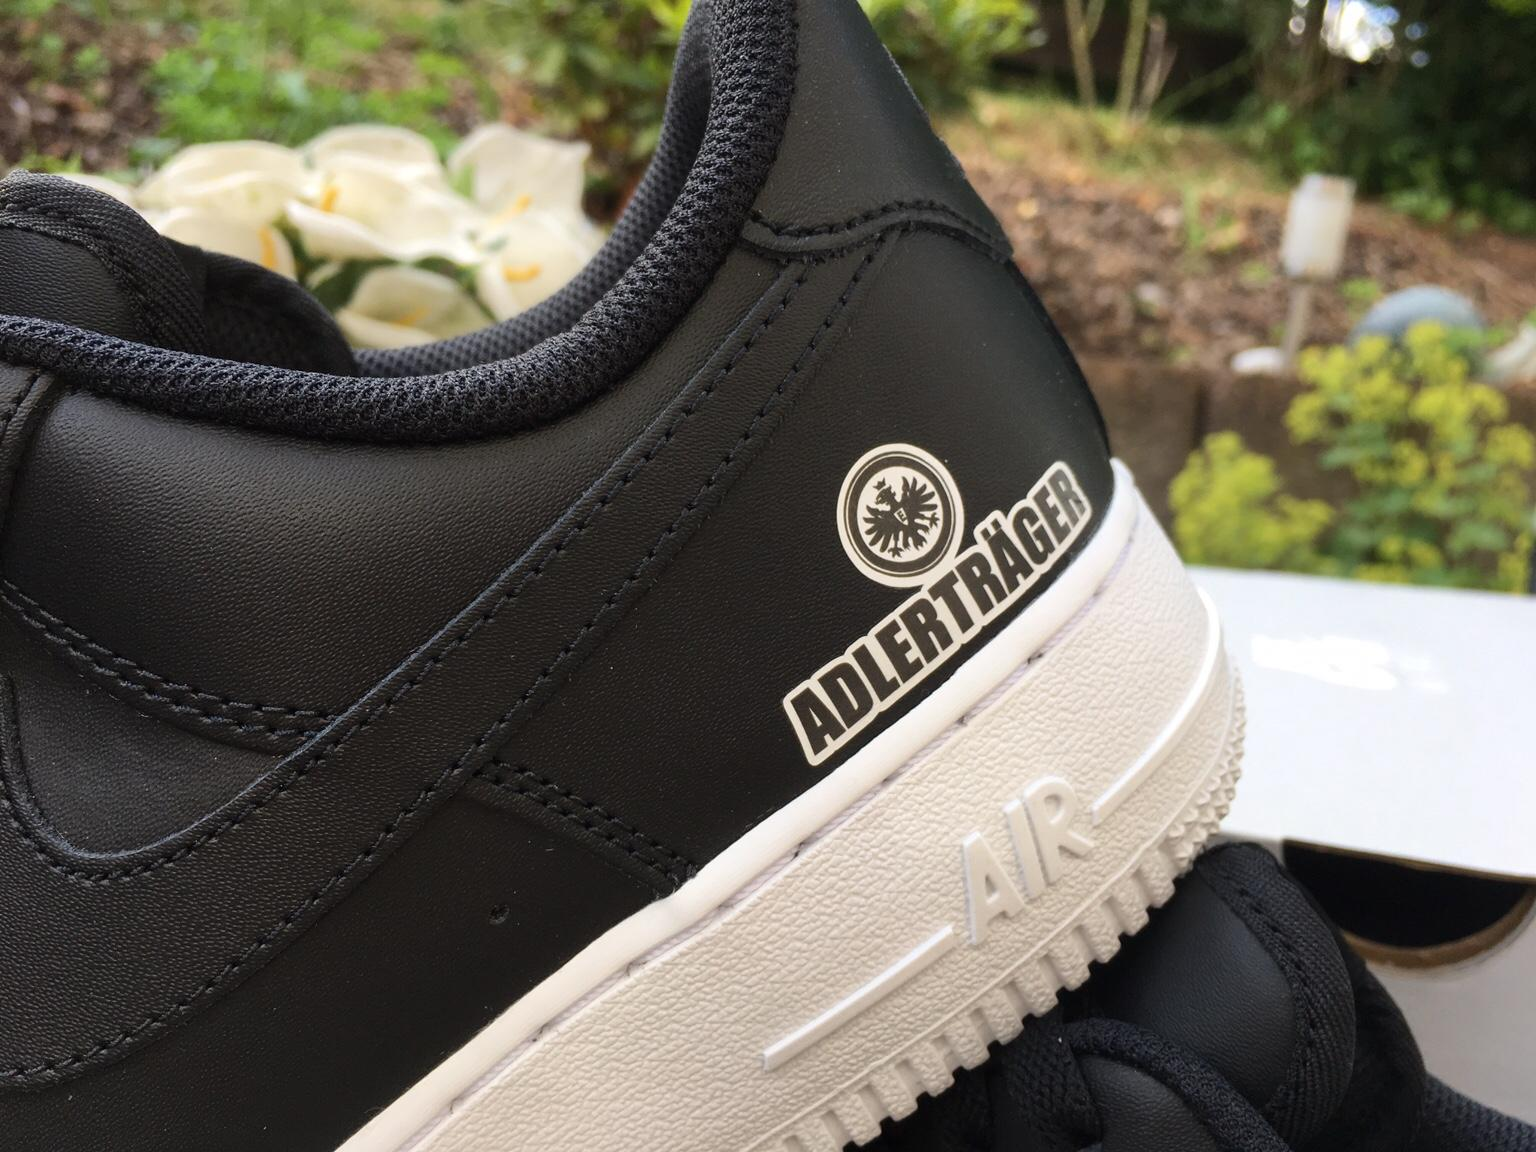 Adlerträger Nike Air Force one limitiert